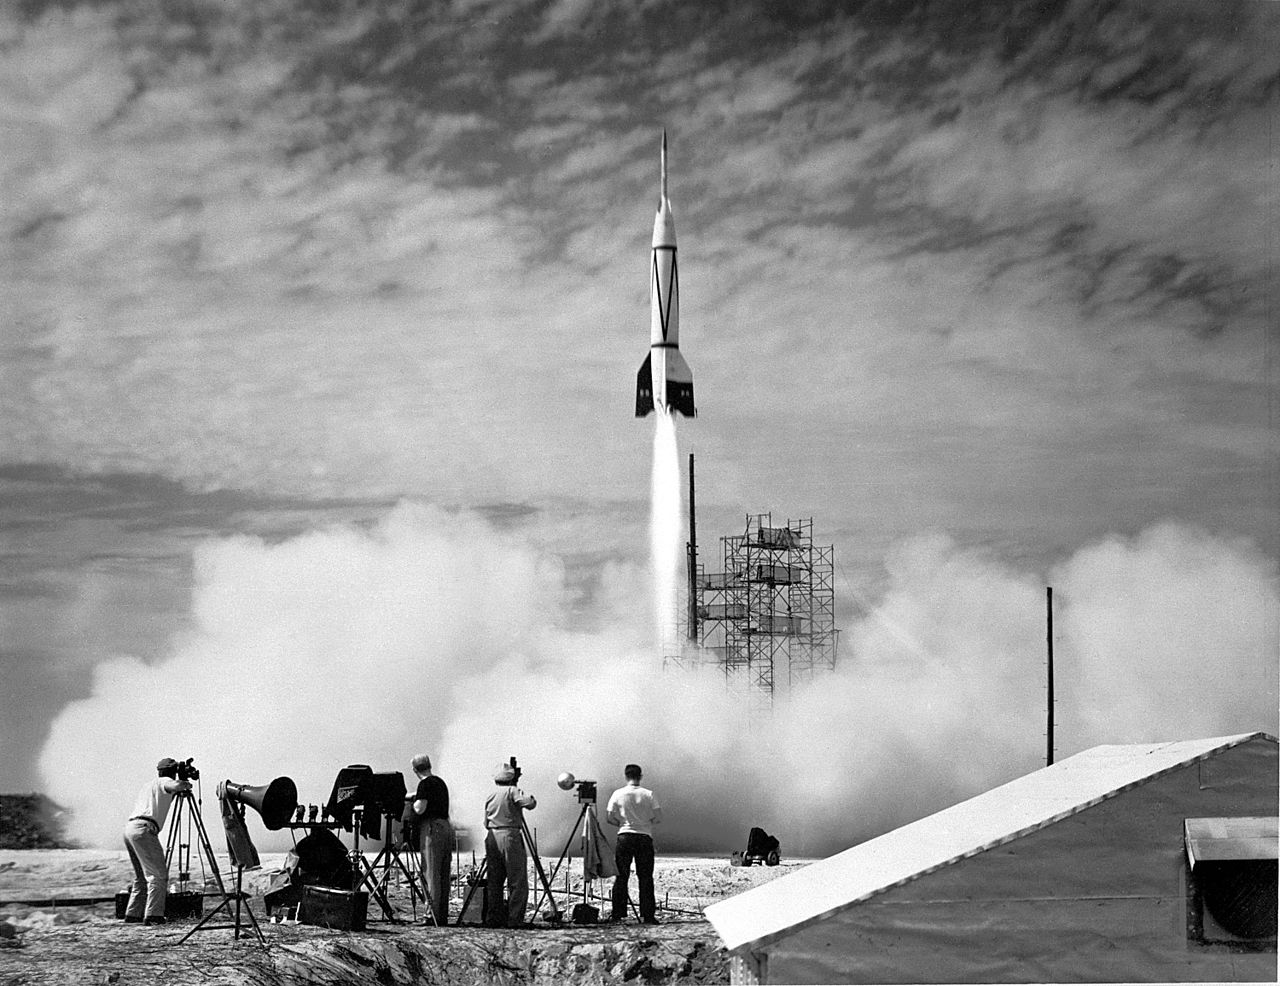 In July 1950 the first Bumper rocketis launched from Cape Canaveral, Florida.